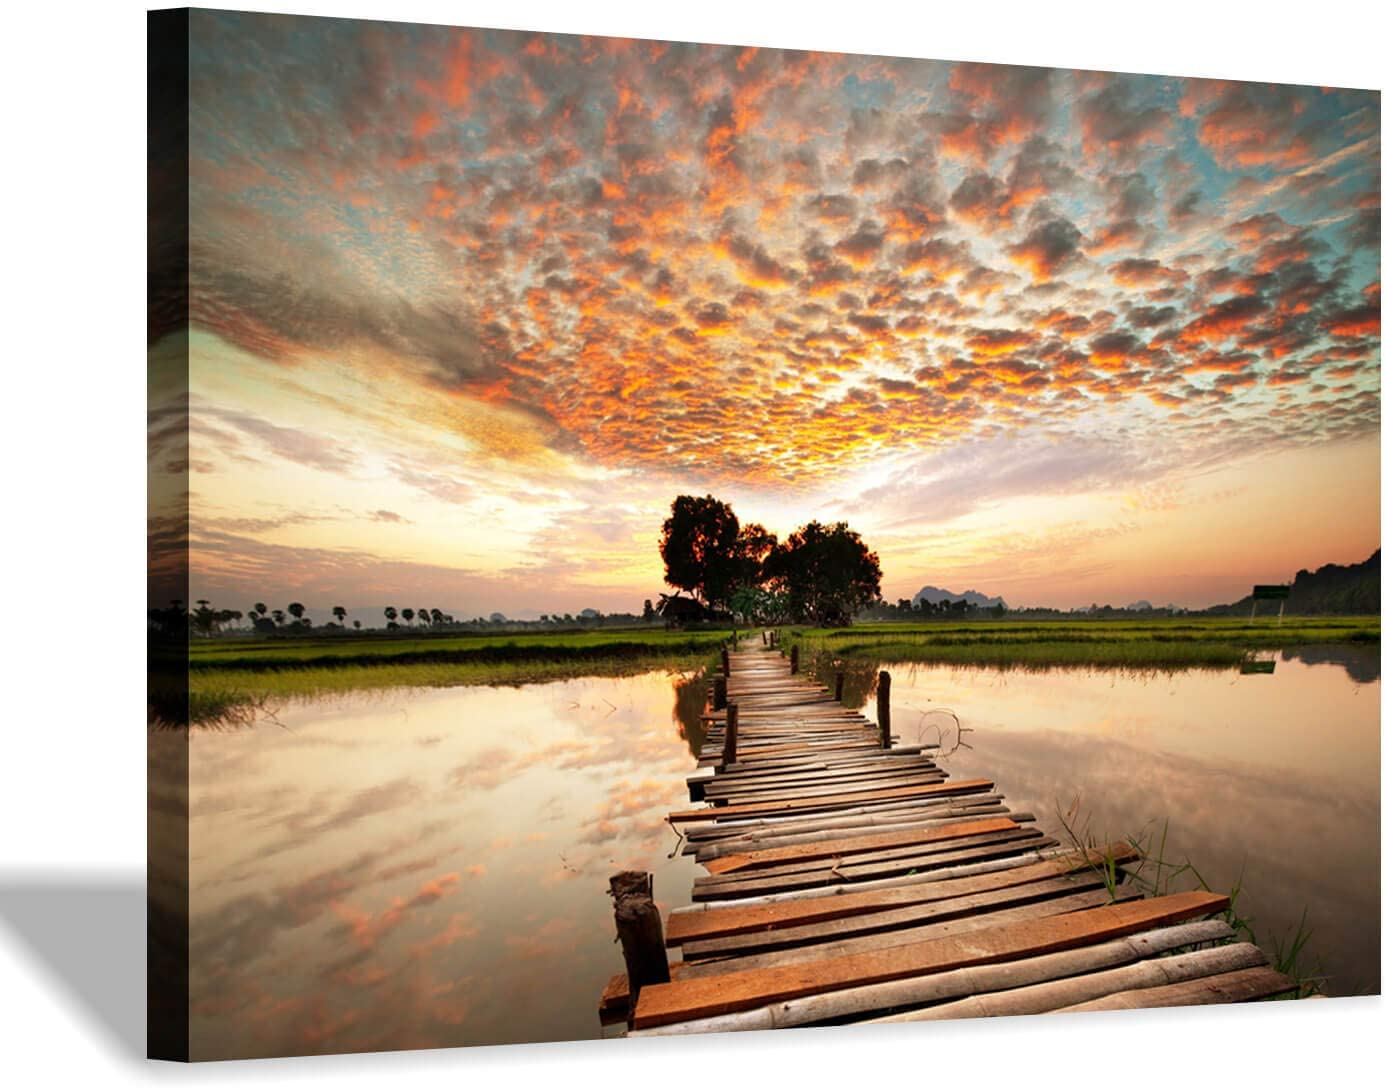 Amazon Com Lake Pier Canvas Wall Art Dock In Sunset Artwork Wooden Bridge Picture Boardwalk Painting For Office 36 X24 X1 Panel Posters Prints